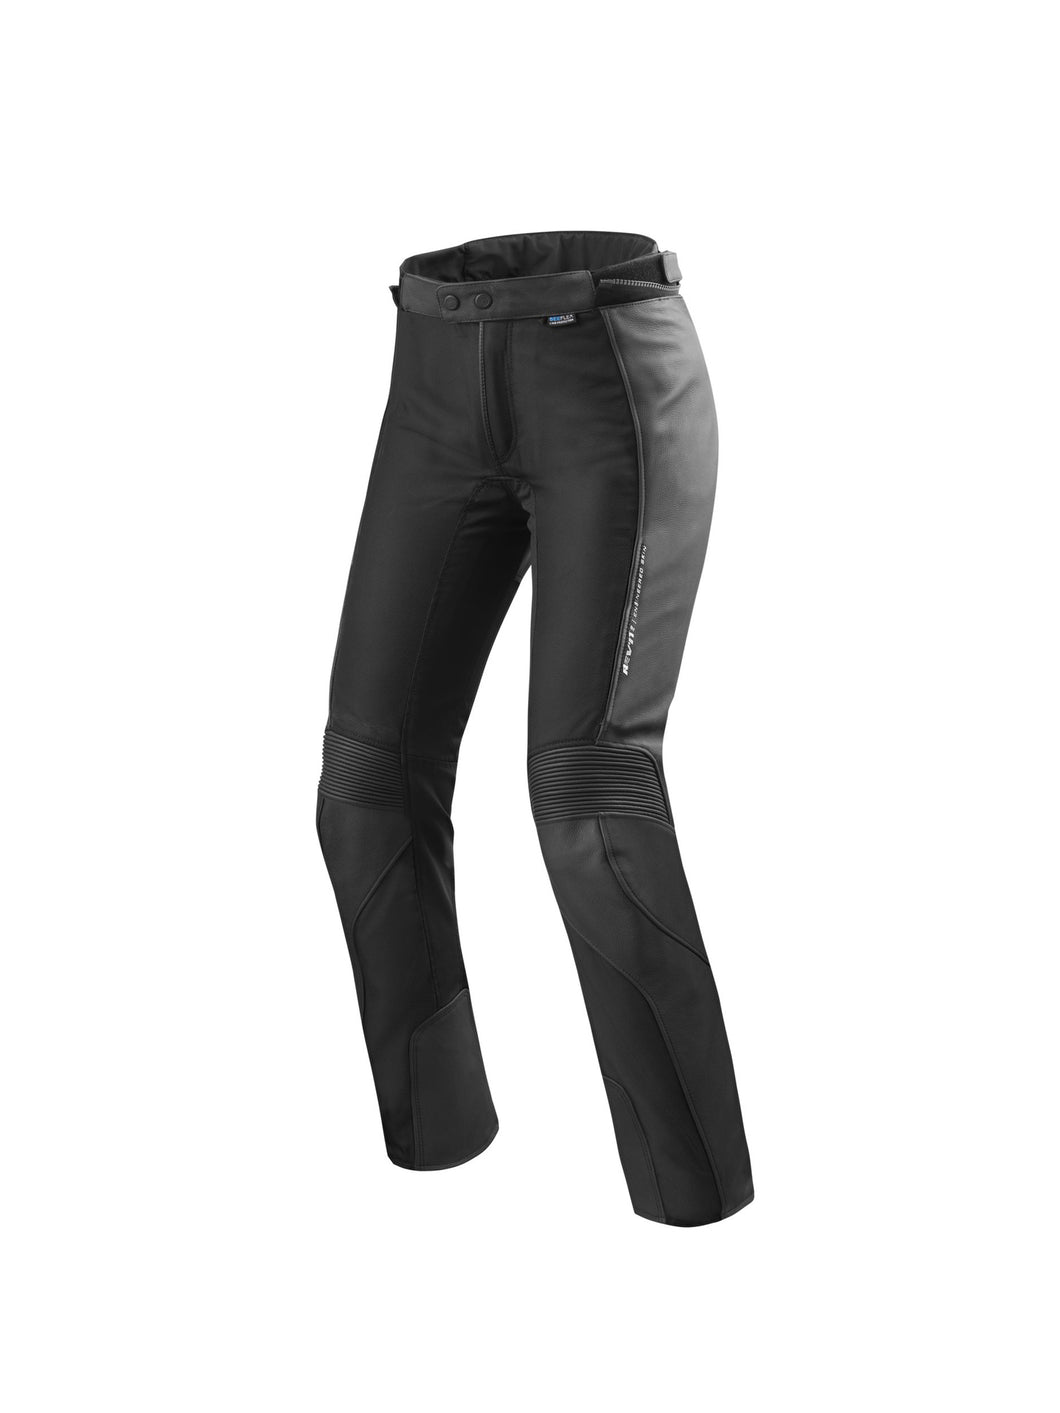 REVIT Ignition 3 Womens Pants